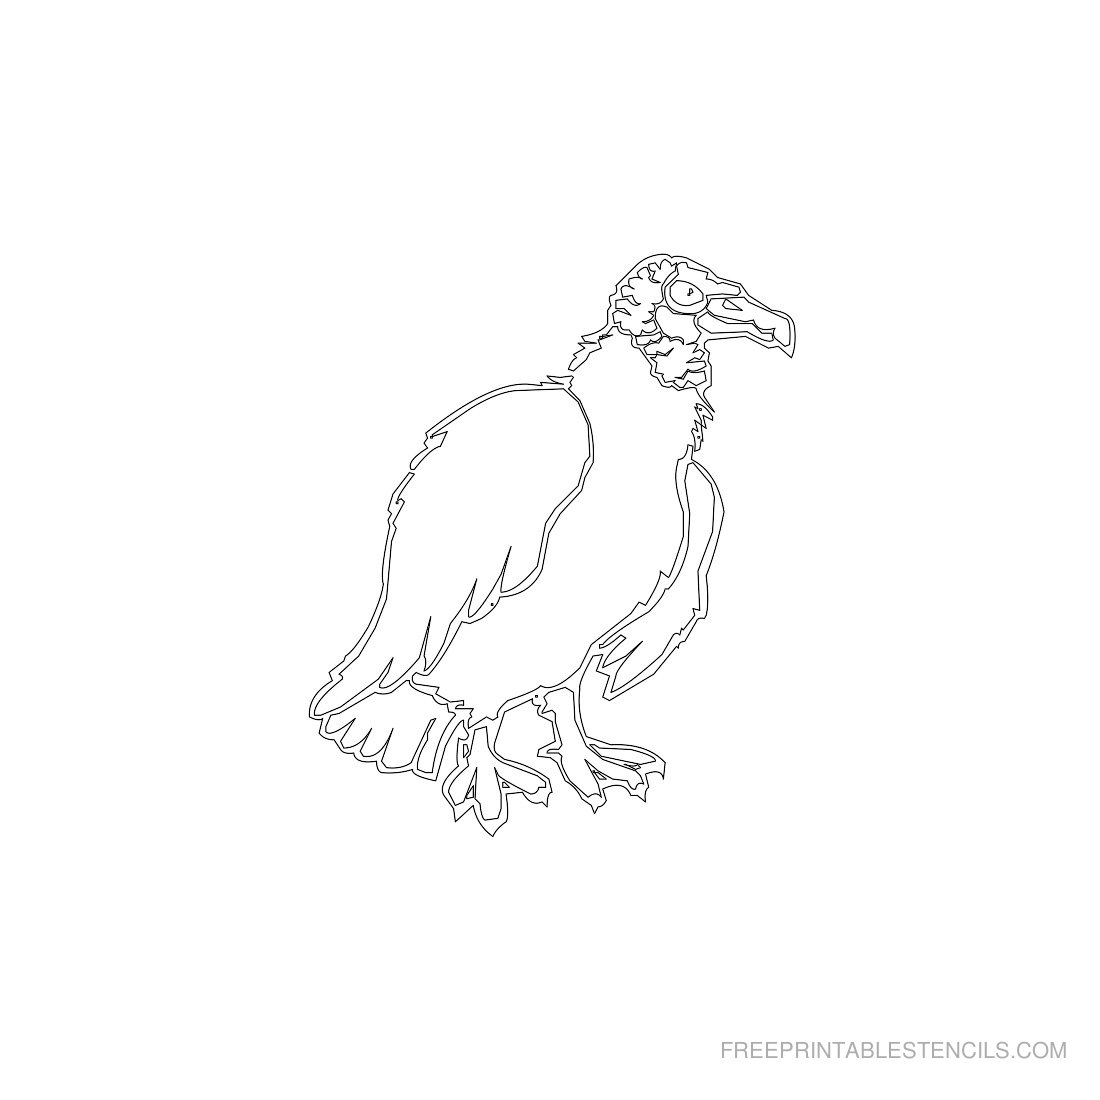 Free Printable Animal Stencil Vulture